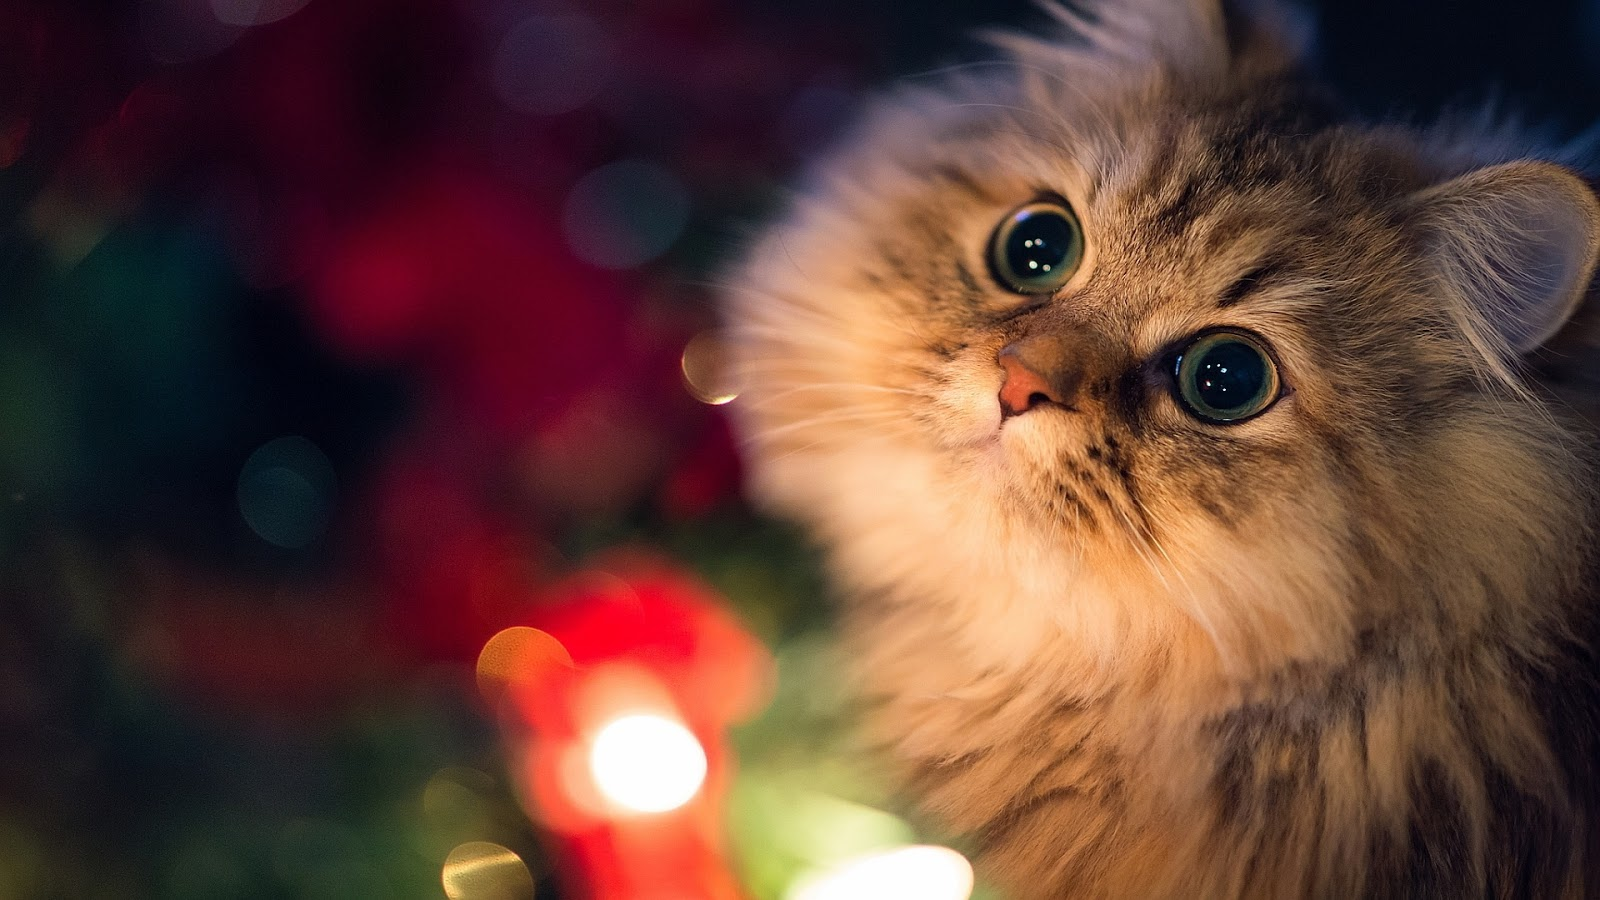 Cute Cat with Big Eyes Full HD Desktop Wallpapers 1080p 1600x900